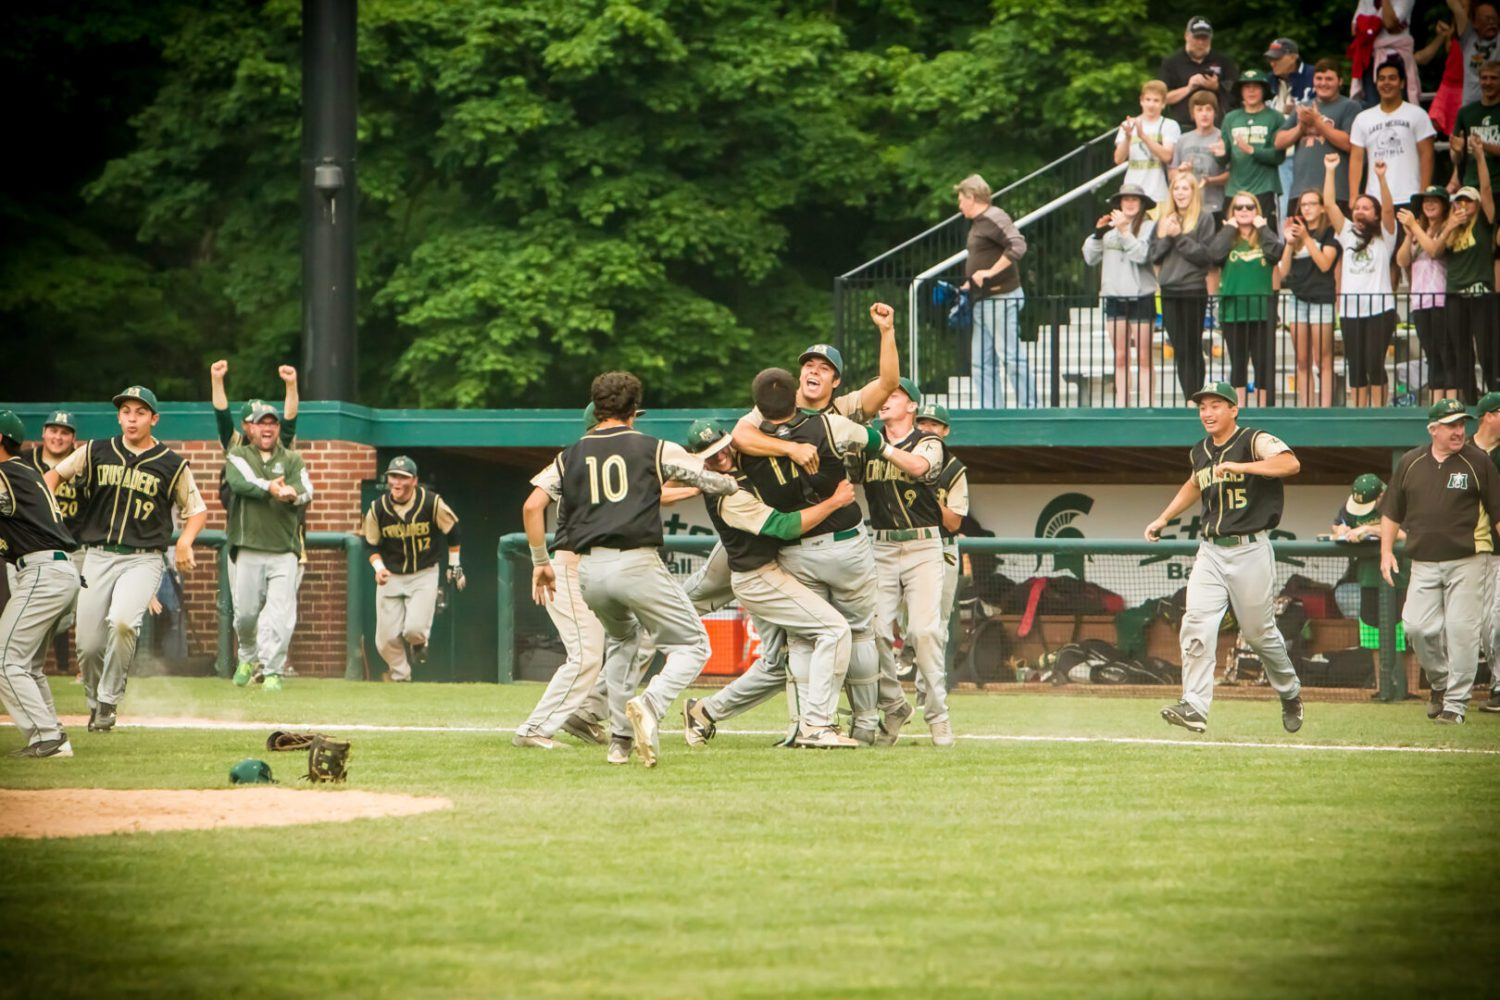 Photo gallery from Muskegon Catholic's baseball state championship